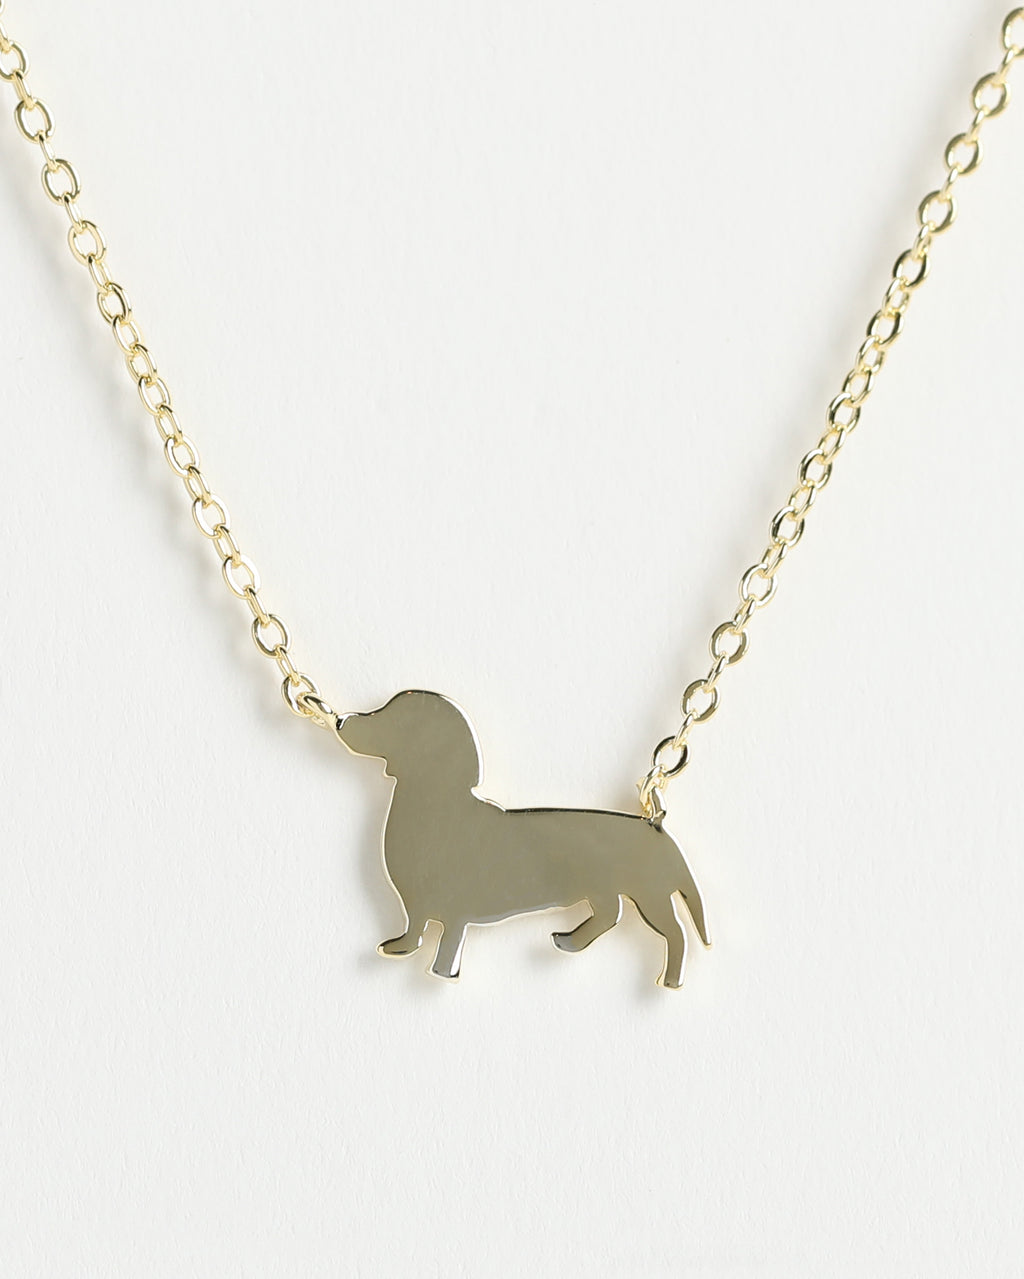 DACHSHUND Delicate Necklace